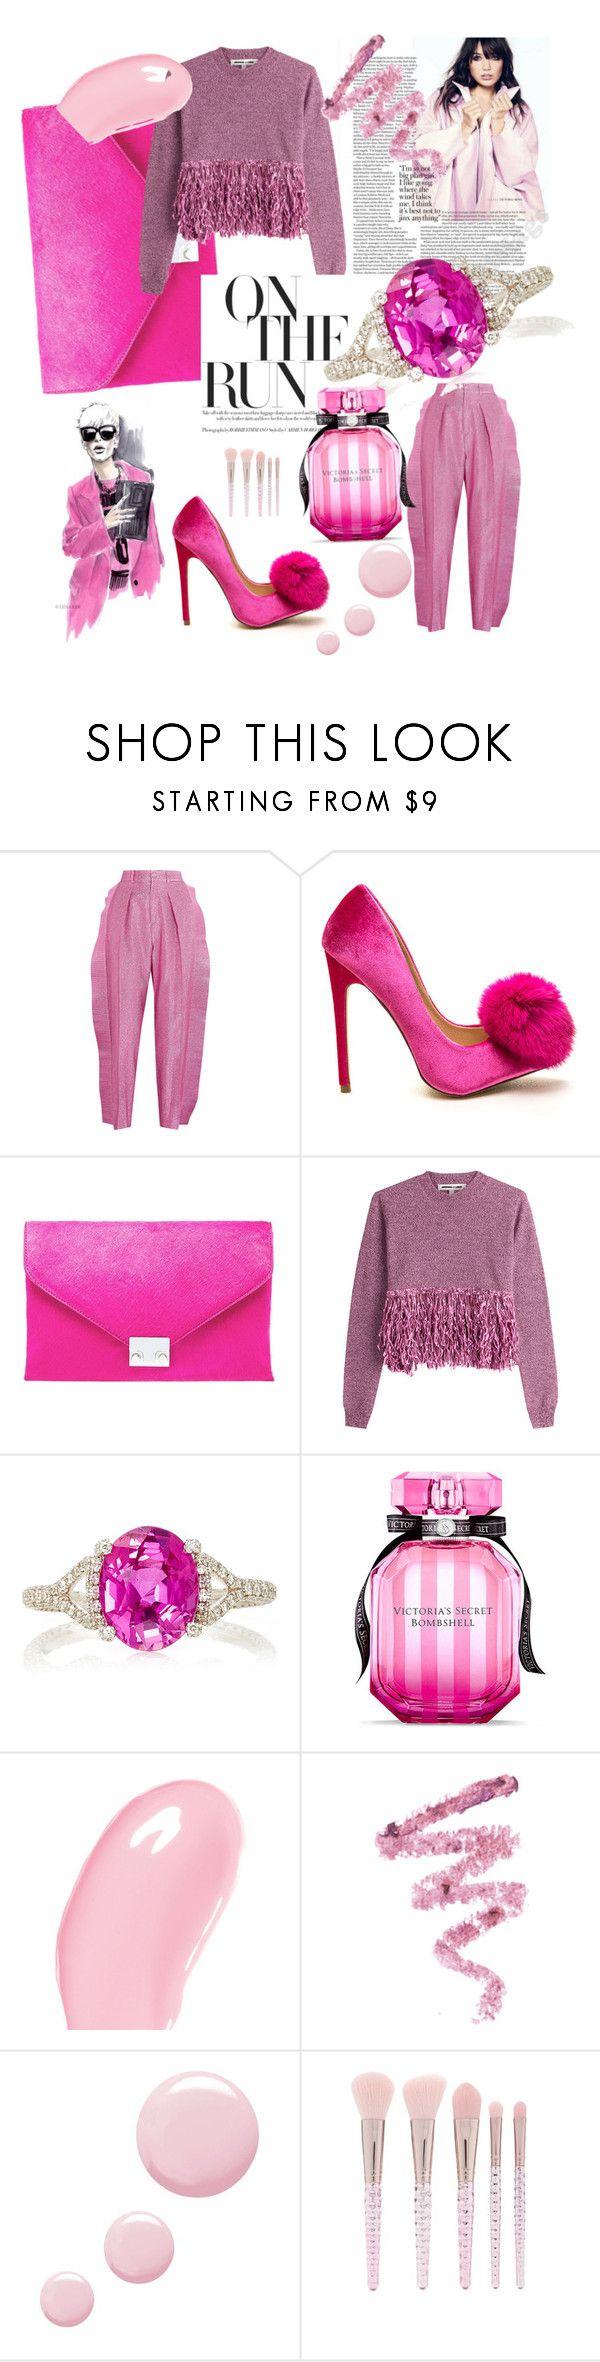 """""""On the pink run"""" by marjana-samus ❤ liked on Polyvore featuring Gucci, Loeffler Randall, McQ by Alexander McQueen, Martin Katz, Victoria's Secret, Christian Dior, Cynthia Rowley, Topshop and Forever 21"""